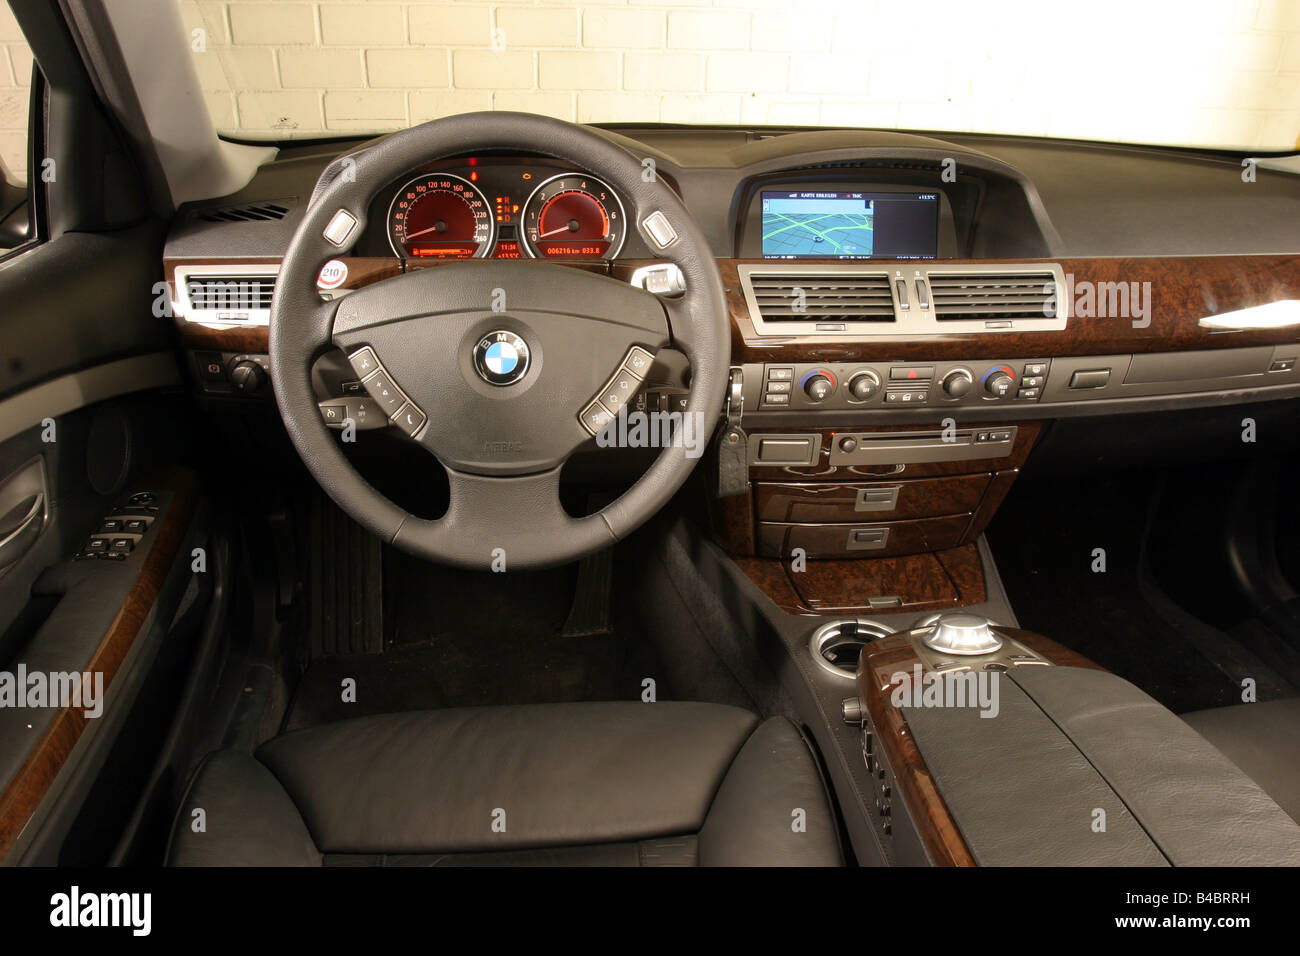 car bmw 745i limousine luxury approx s silver anthracite model stock photo royalty free. Black Bedroom Furniture Sets. Home Design Ideas